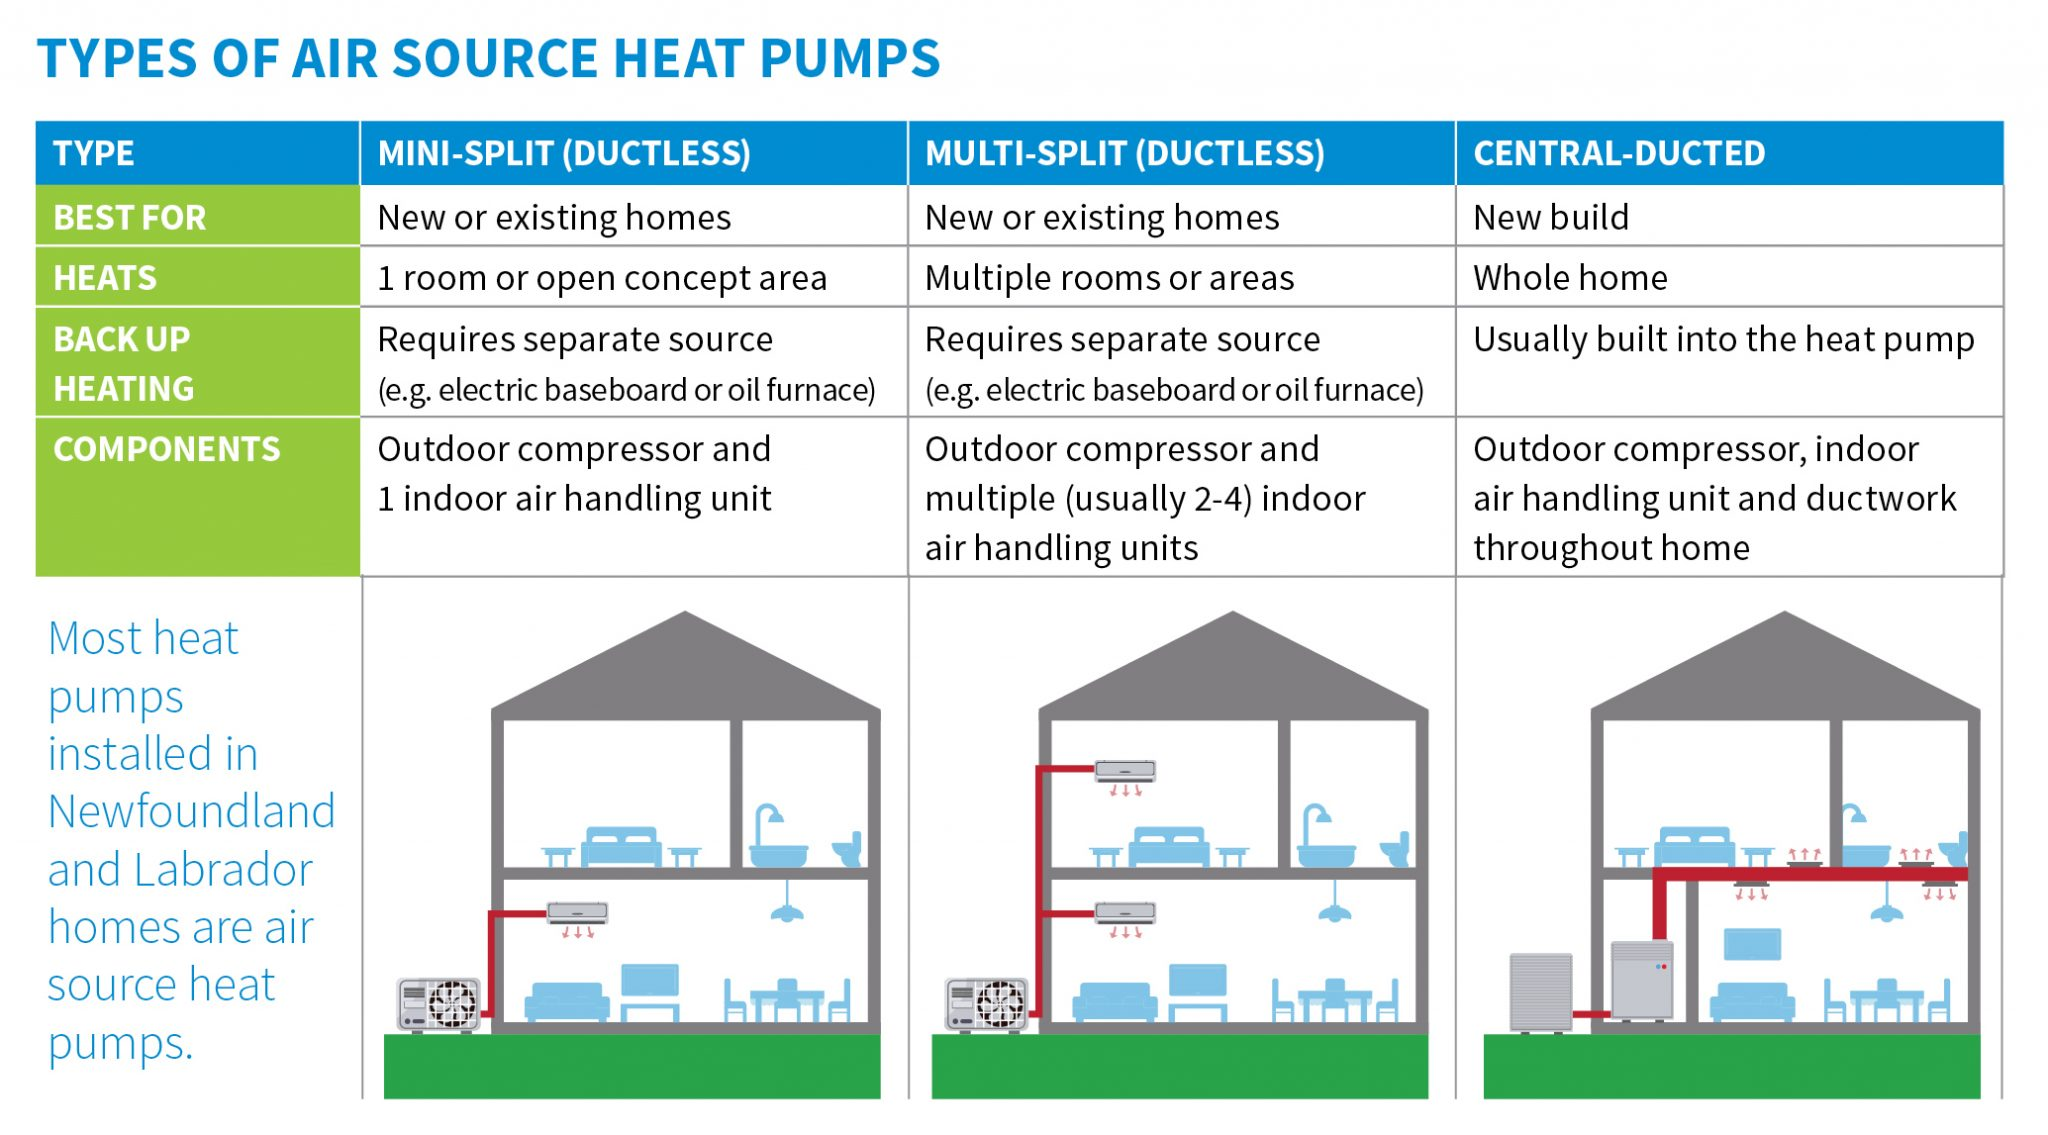 TYPES OF HEAT PUMPS1